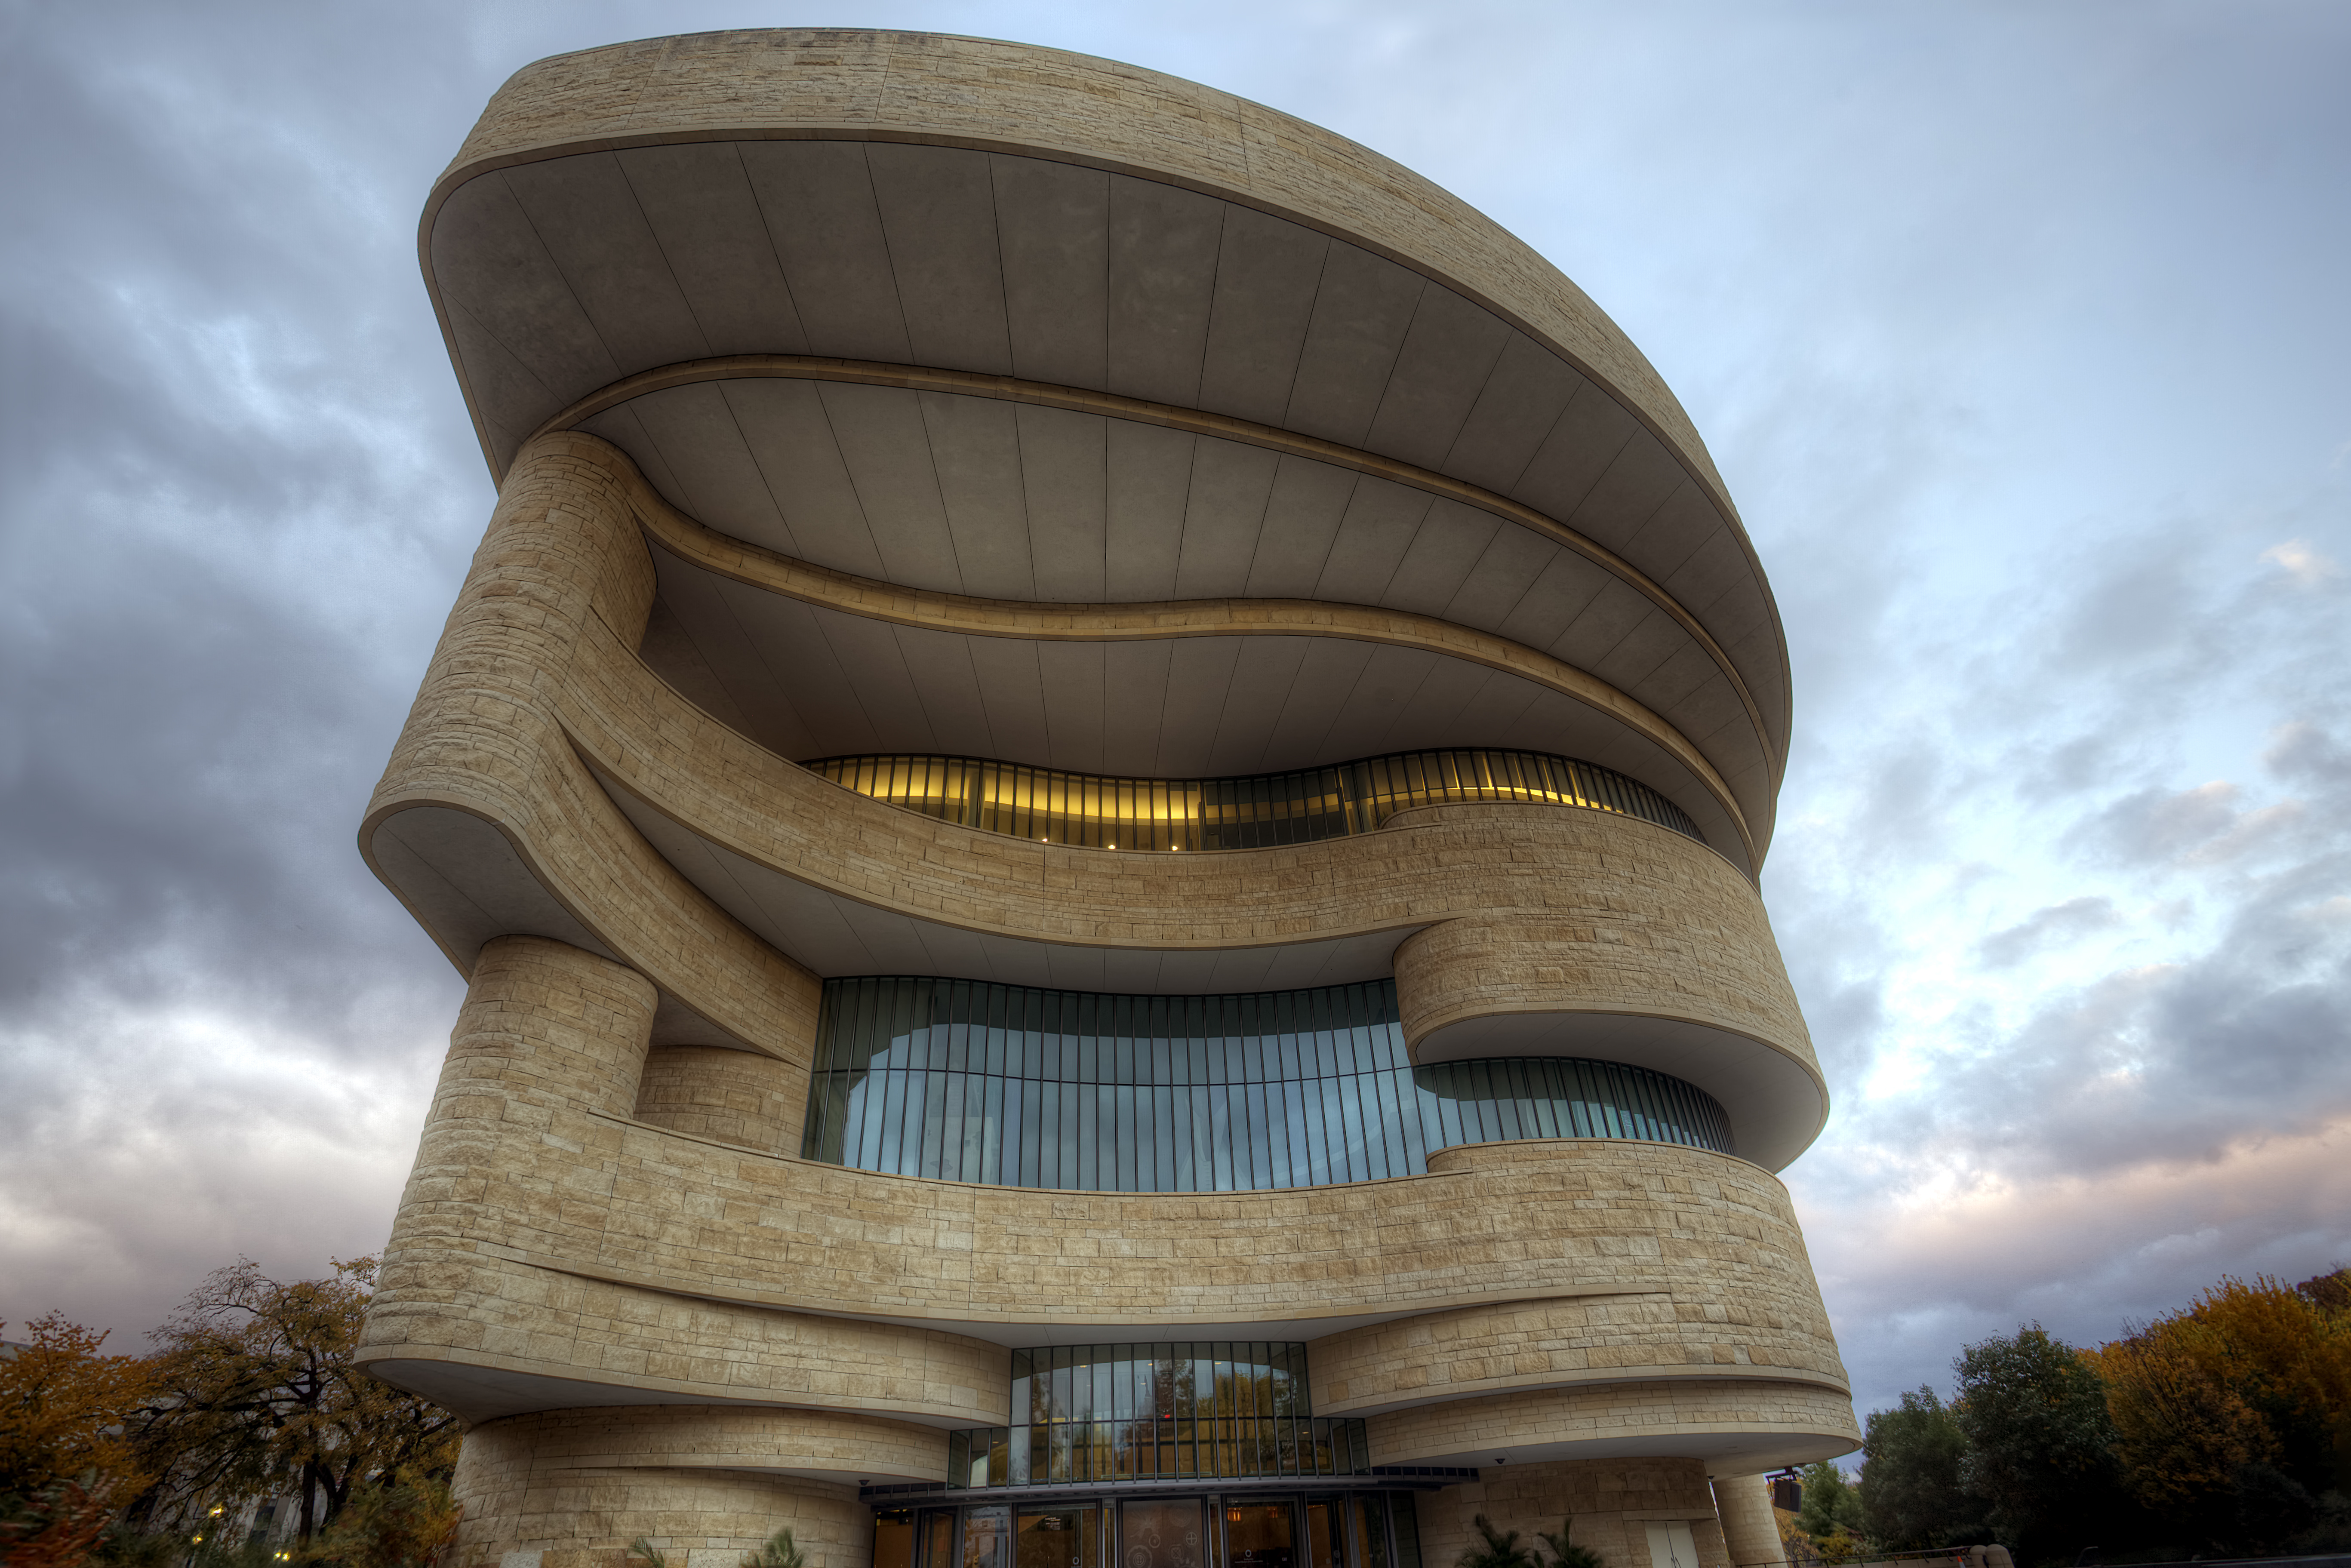 Beau Smithsonian, Museum, American Indian, Architecture, Sunrise, Clouds,  Washington Dc,